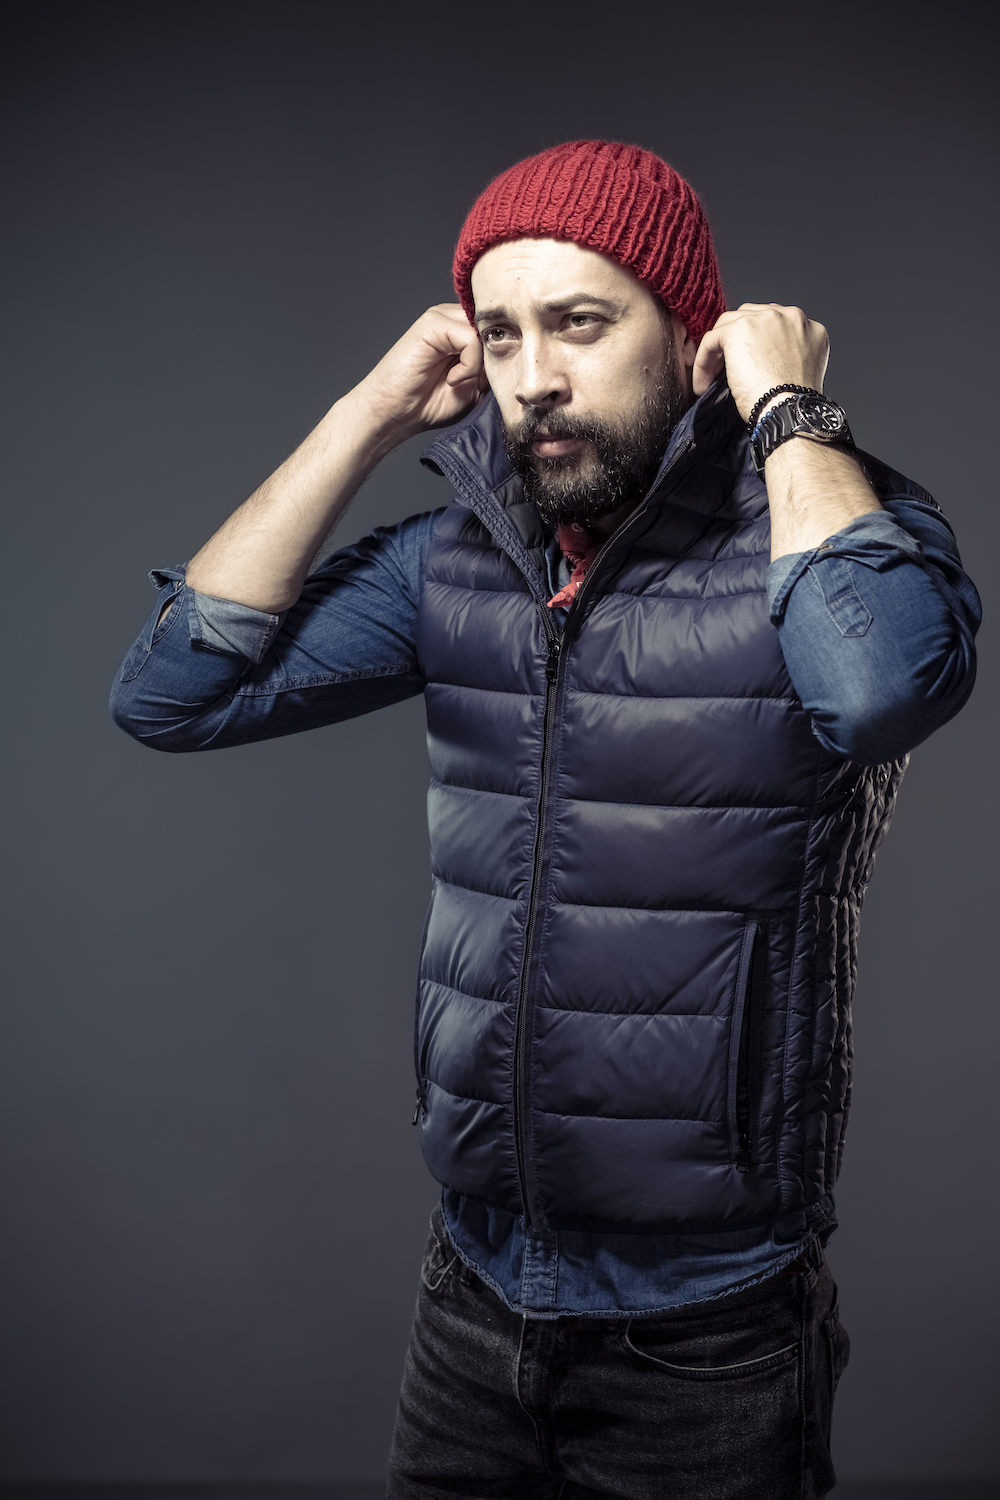 man wearing a red beanie